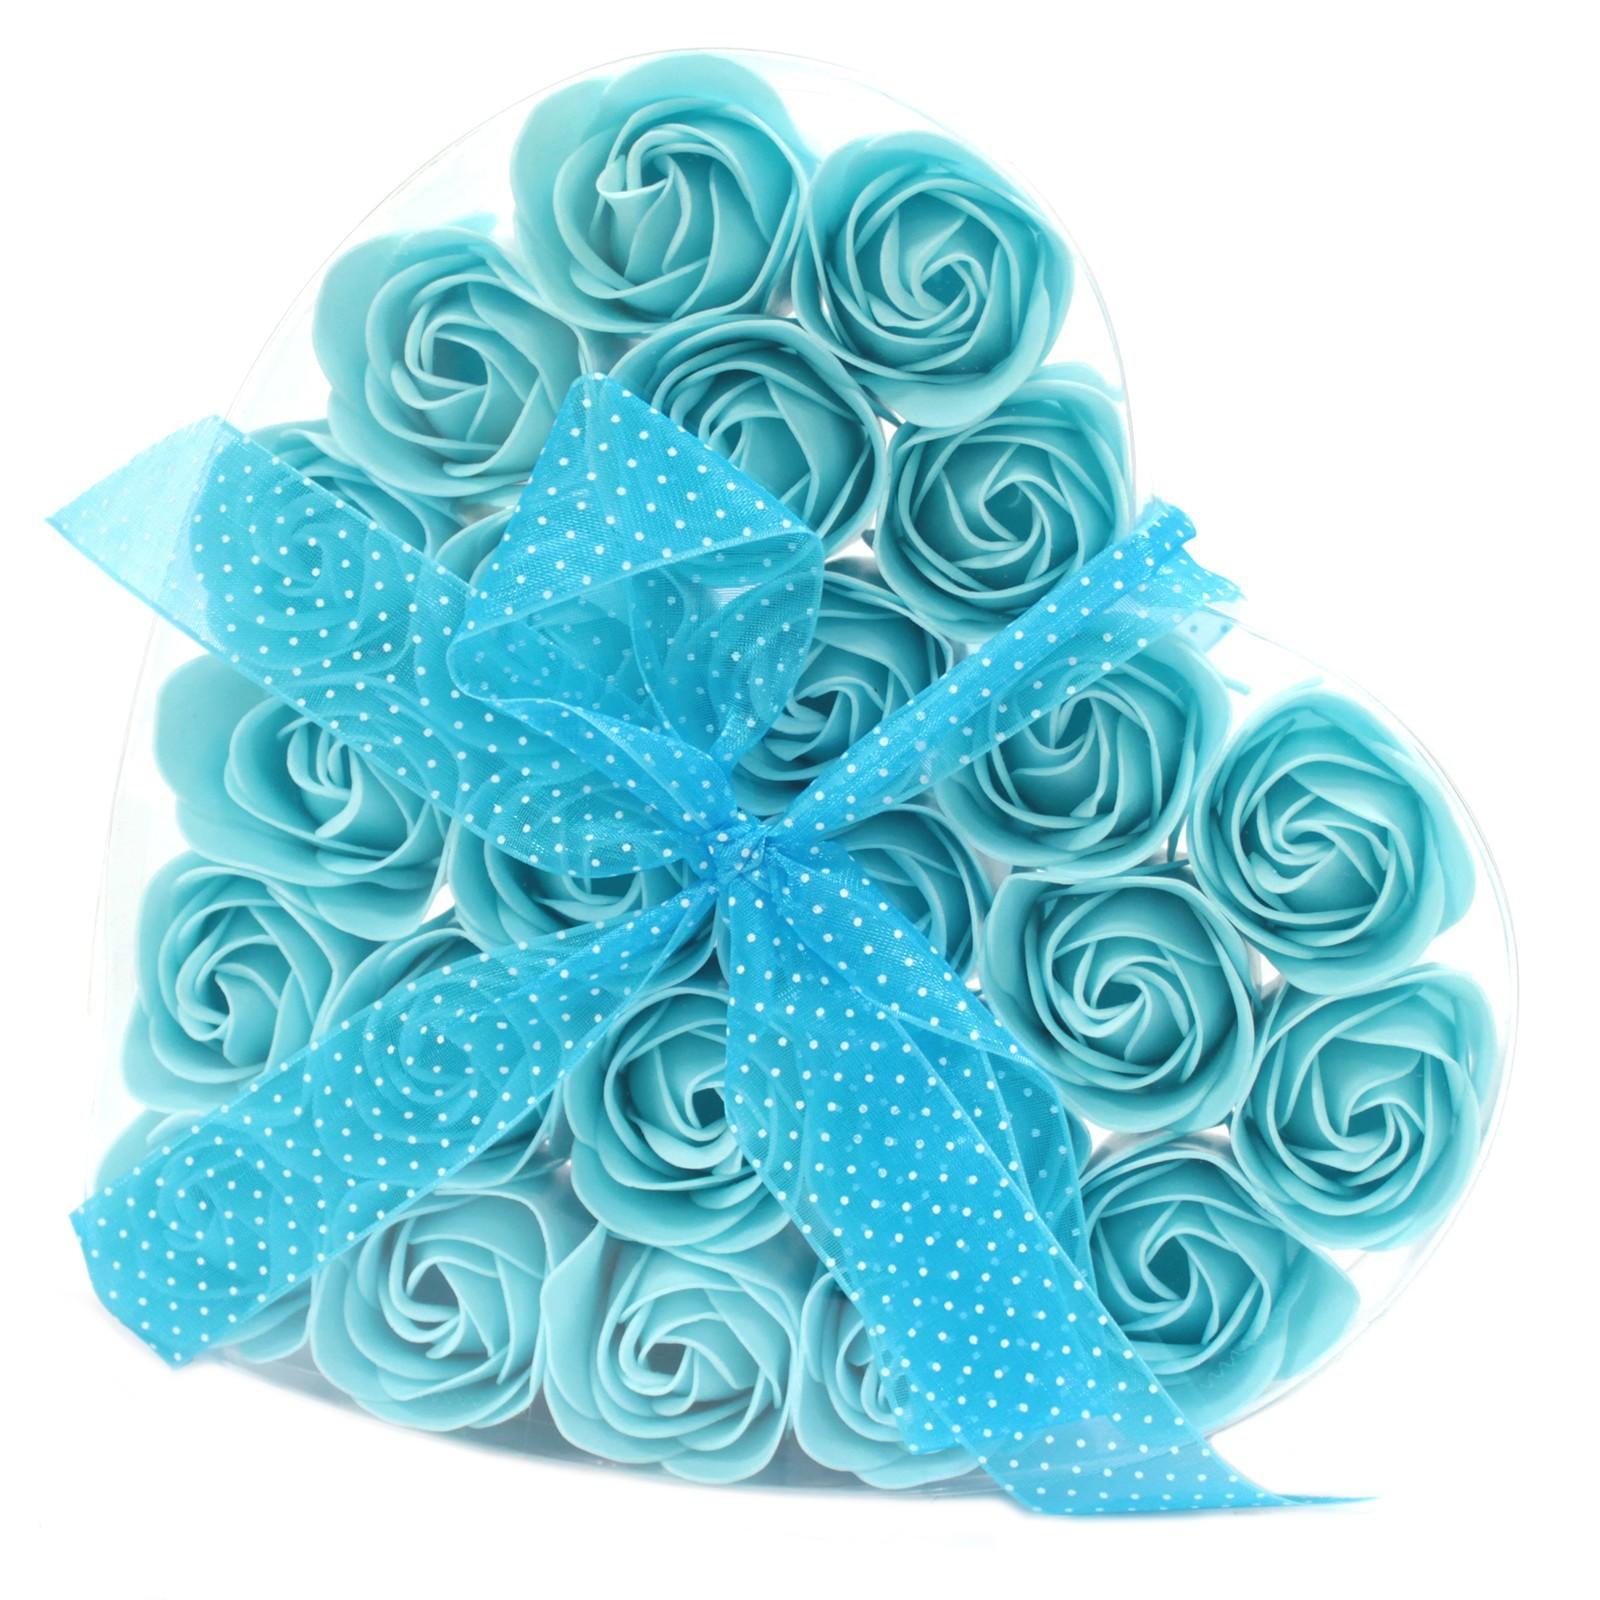 Blue confetti soap rose gift box